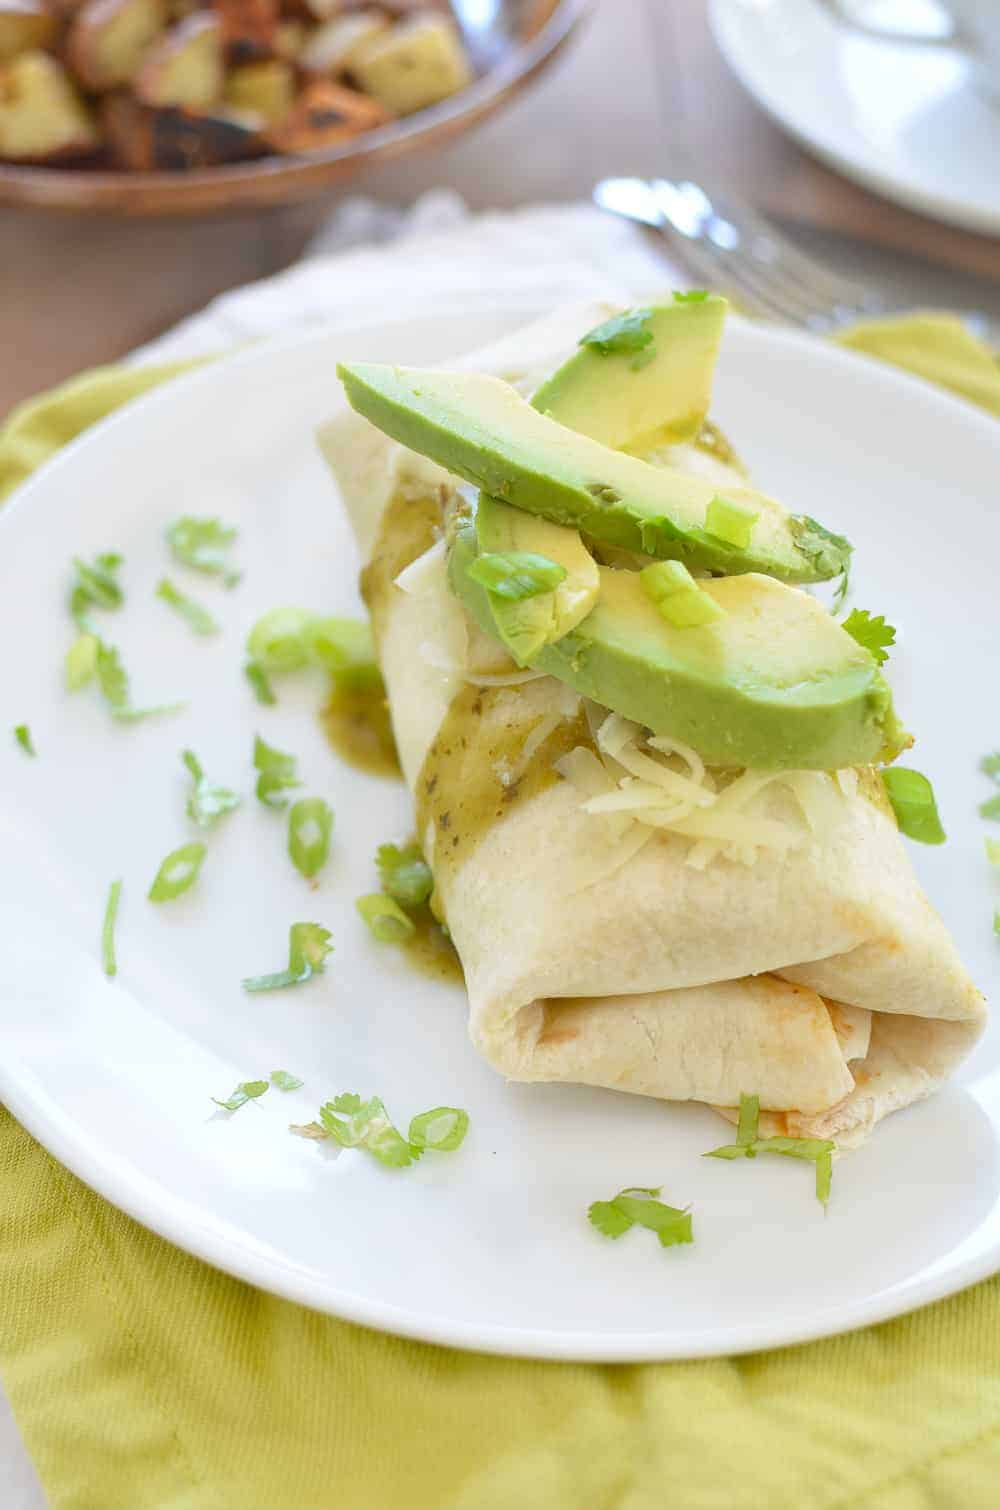 Slow Cooker Breakfast Burritos! Make it at night for a healthy breakfast in the morning. These are #vegetarian, easily #vegan and so delicious! Save this for weekend entertaining for houseguests!  www.delishknowledge.com